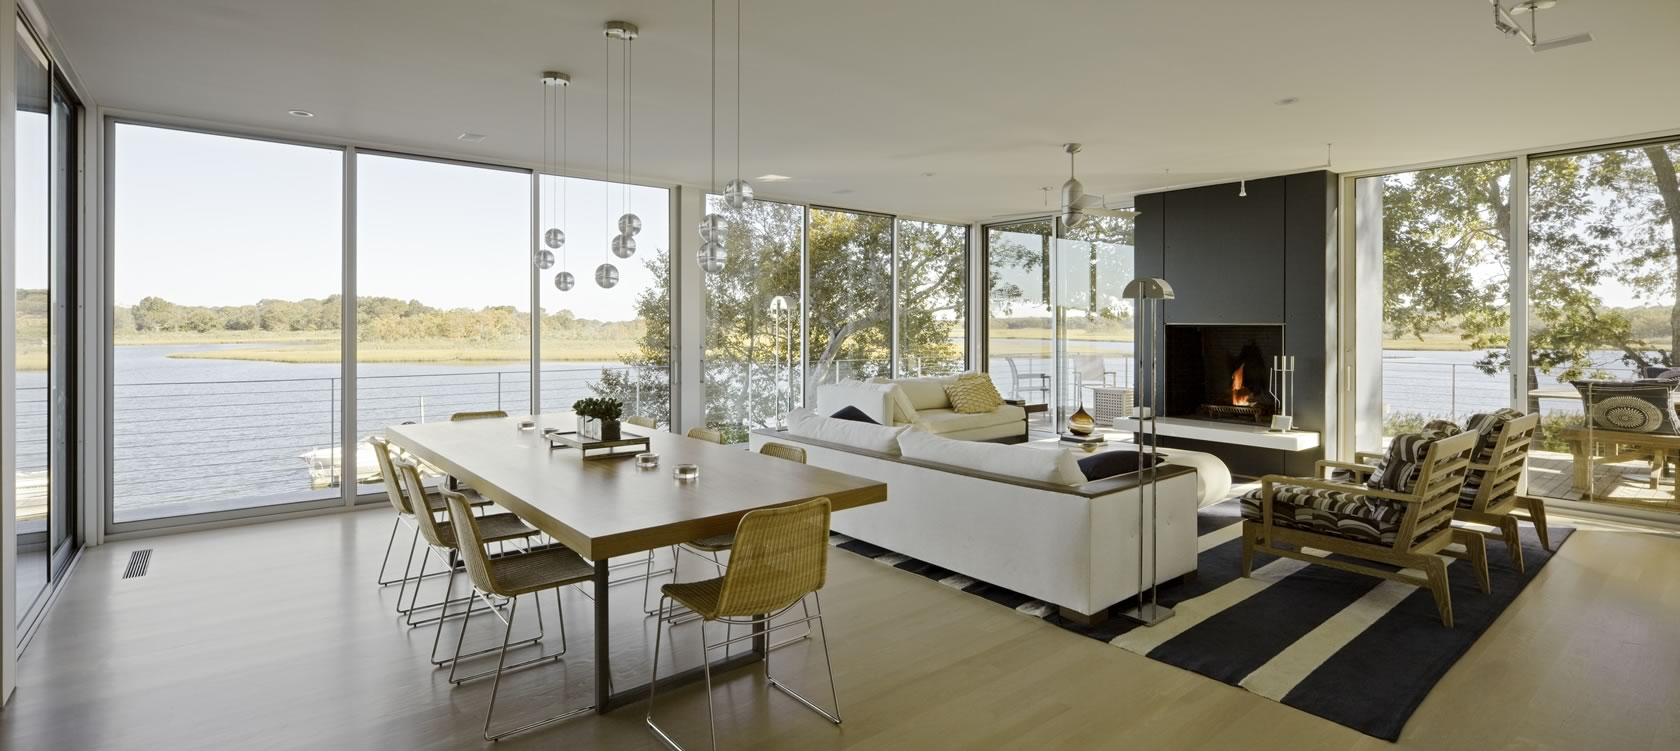 Dining Room Spaces Stelle Lomont Rouhani Architects Award Winning Modern Architect